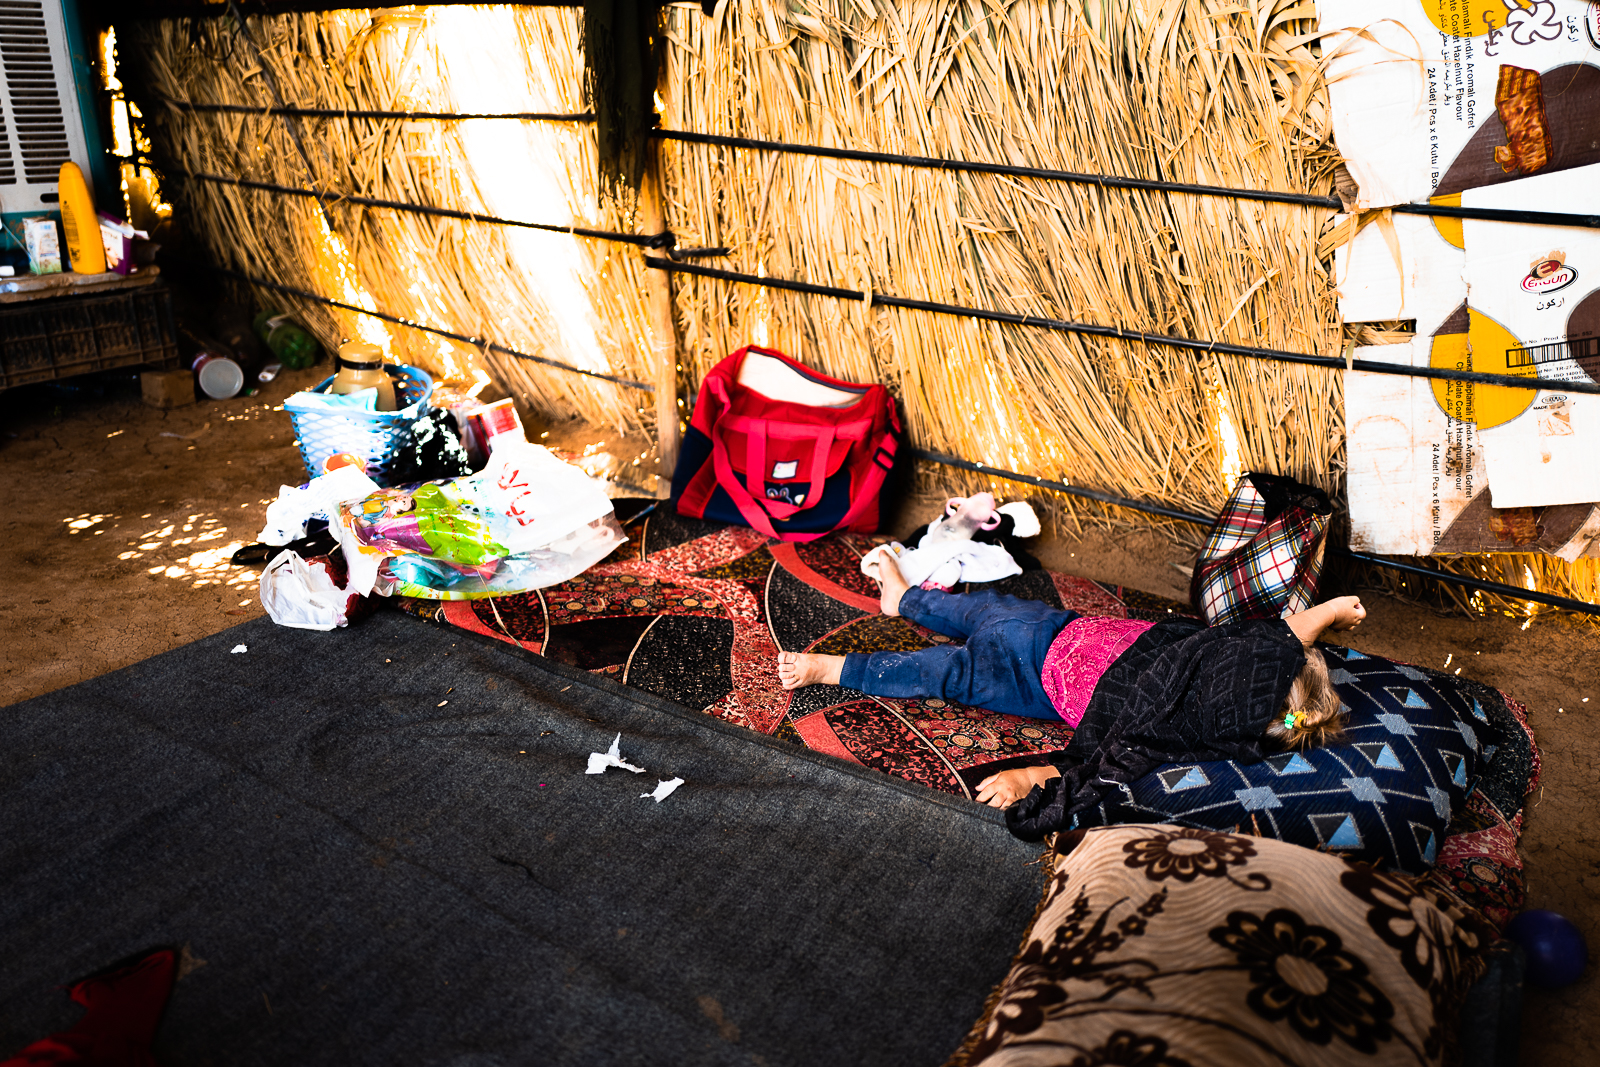 A little yazidi girl sleeping on the ground in a house made of straw, in a unofficial refugees camp on the border of the street near Douhk